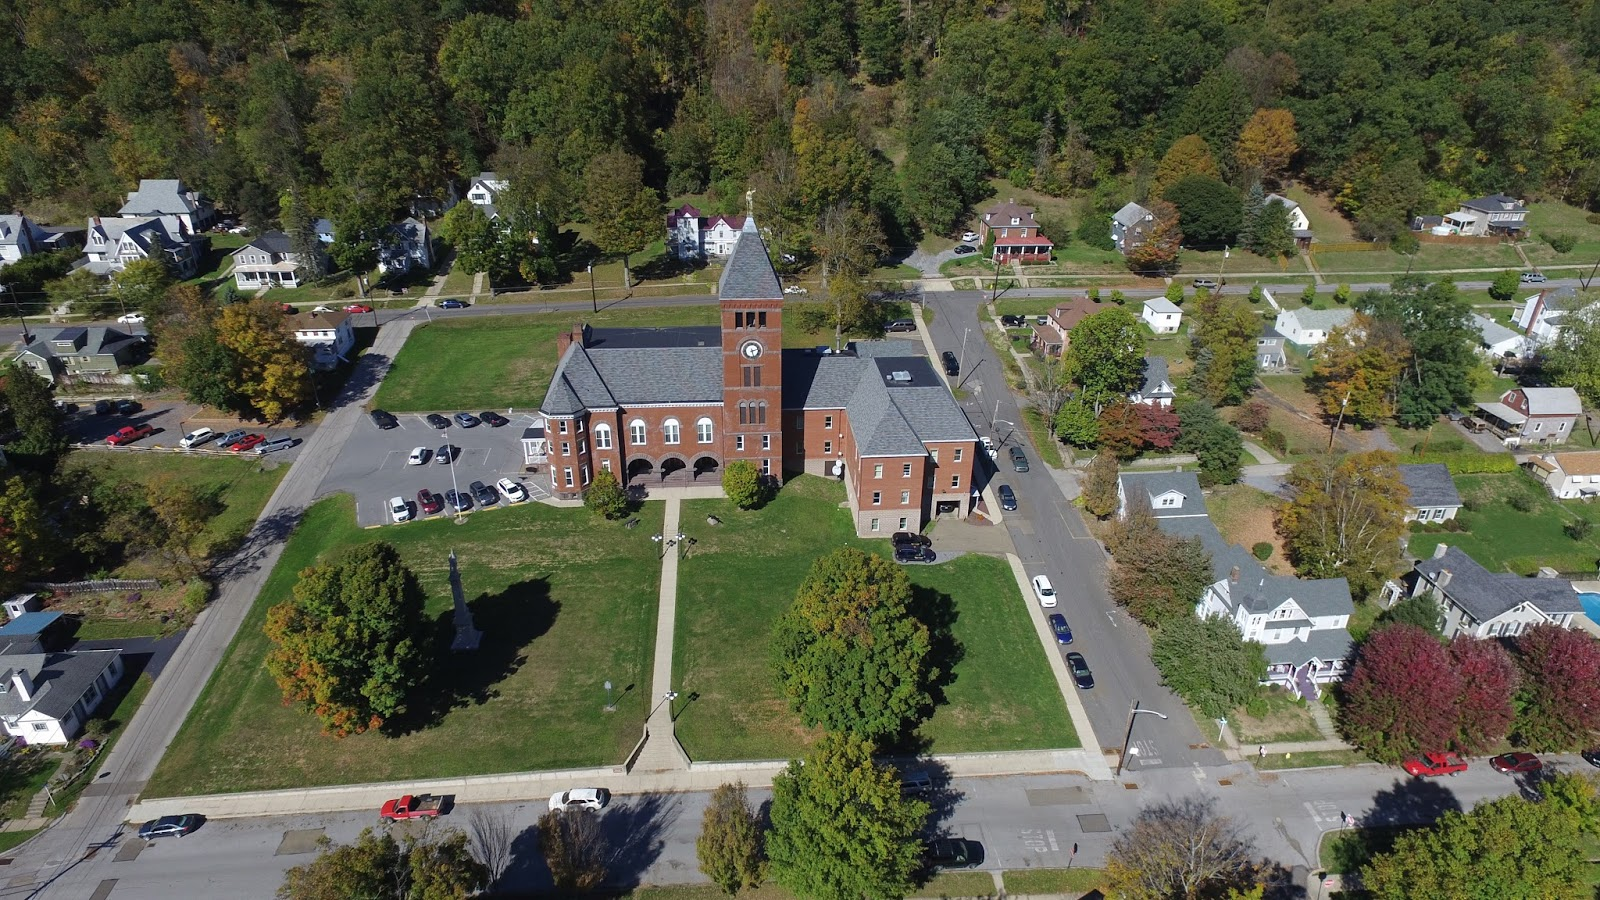 The Company Has Flown Over St Marys Dubois And Other Cities In Region Will Post Emporium Video On Web Site Droneguyspa